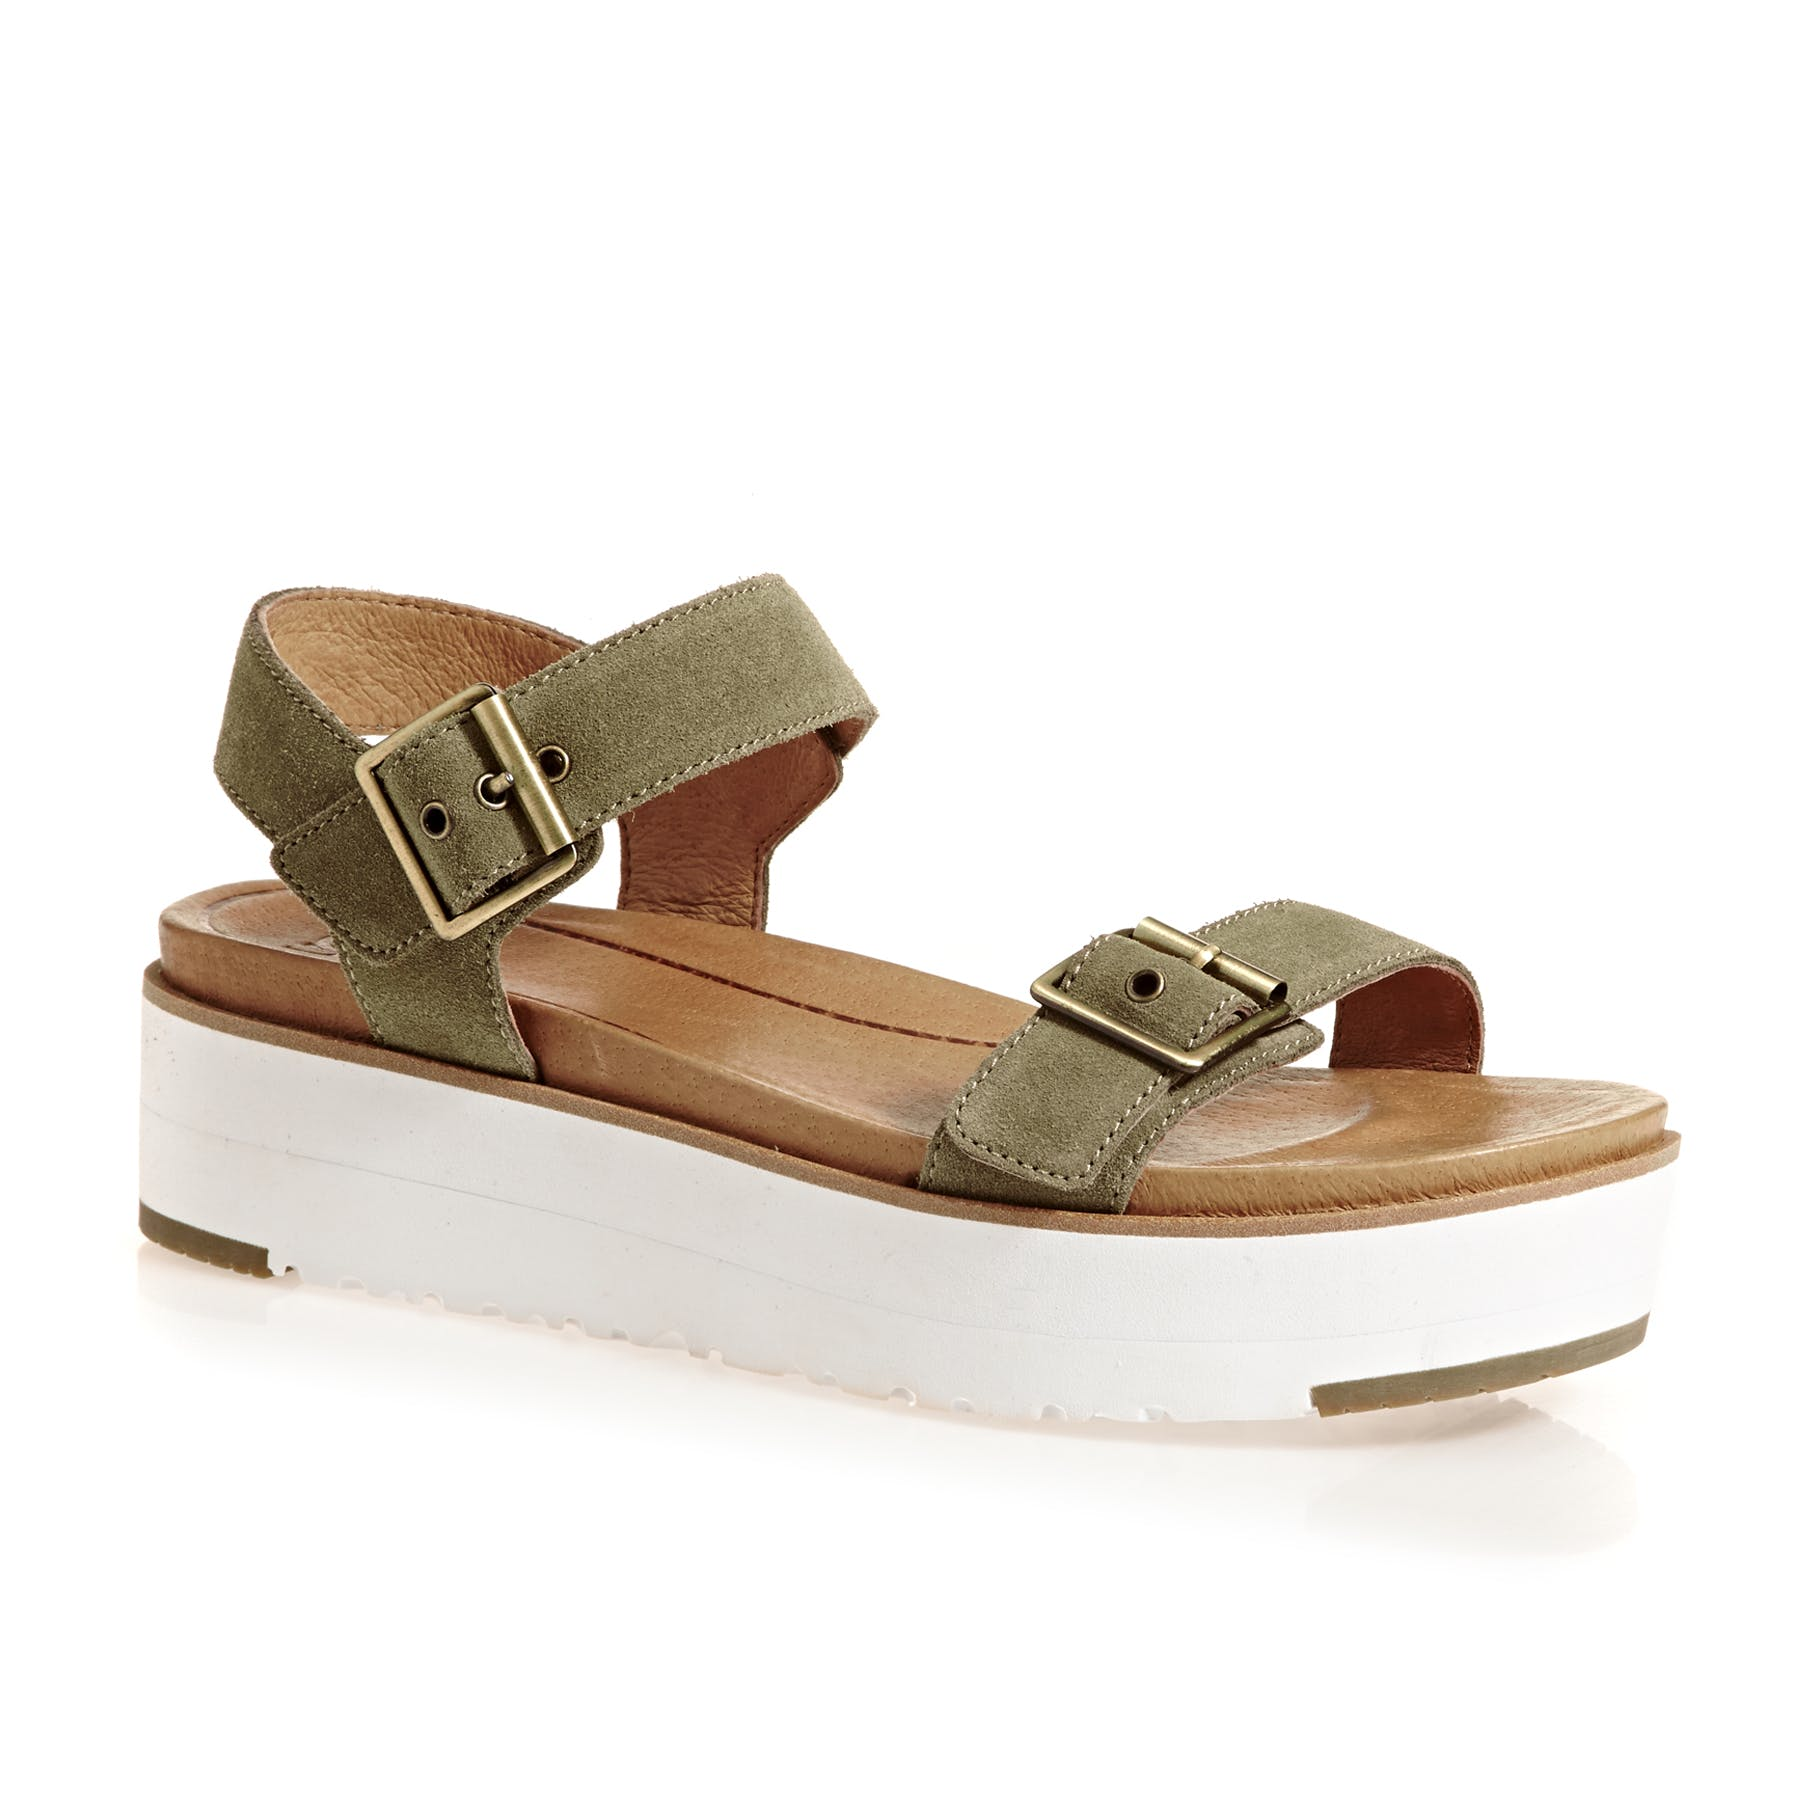 69be98d81db UGG Angie Womens Shoes available from Surfdome